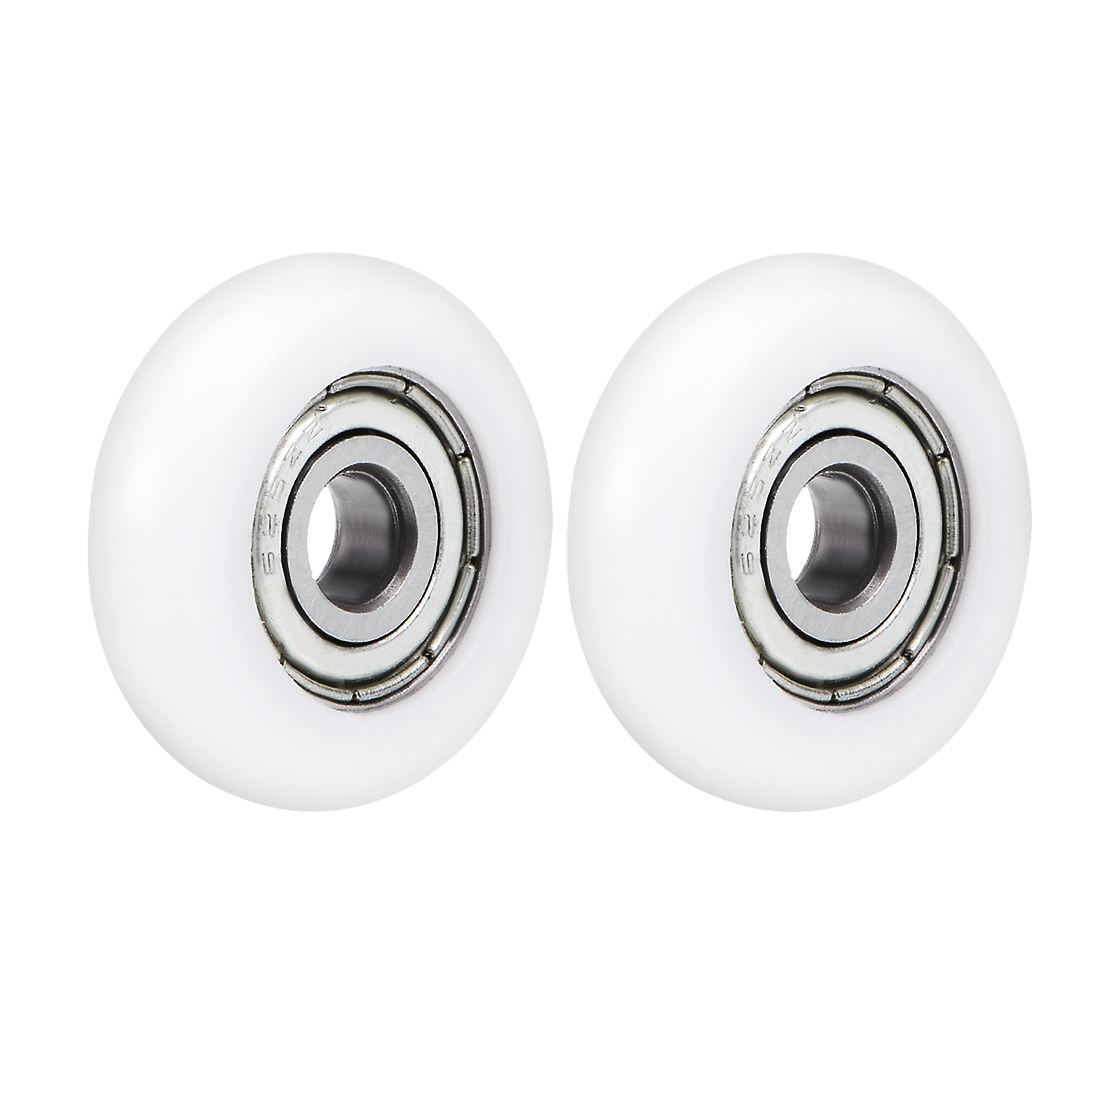 625ZZ Plastic Coated Ball Bearing 5x23x7mm for Door Window Furniture Pulley 2pcs